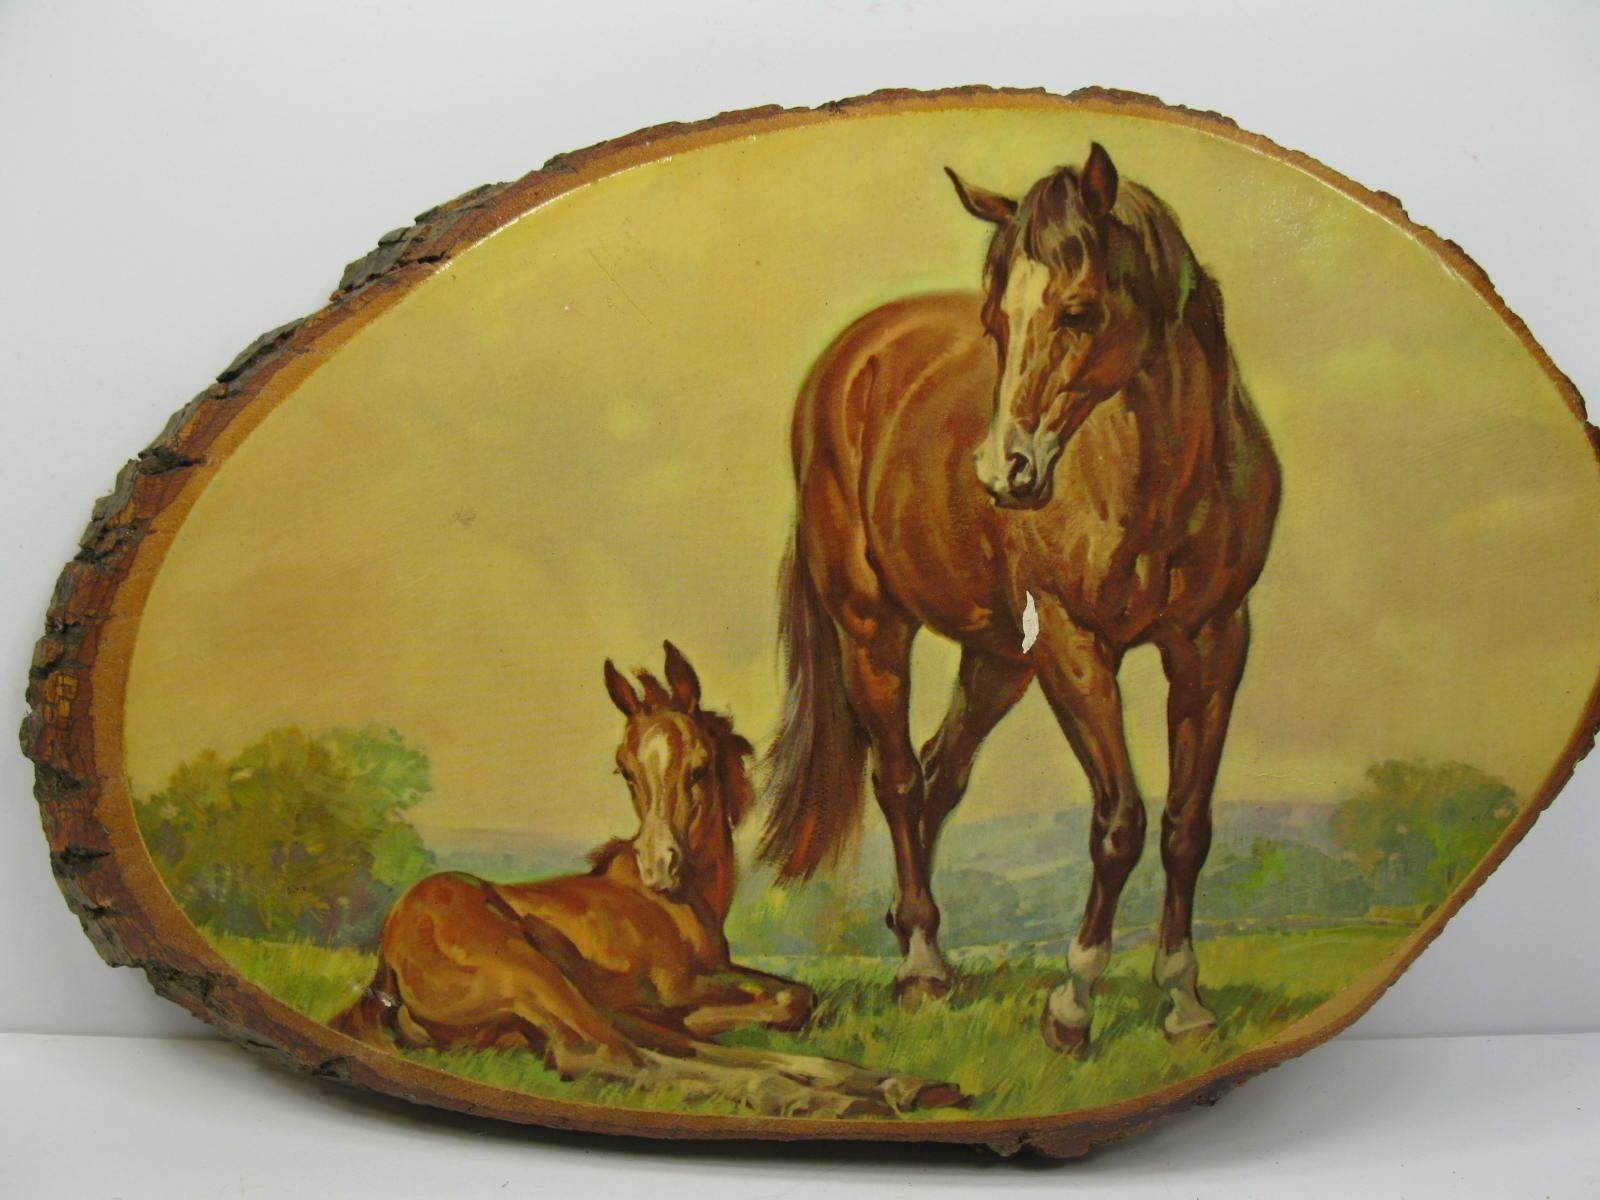 Vintage Horse Colt In Field Wood Slab Decoupage Wall Art Plaque Inside Current Decoupage Wall Art (Gallery 23 of 30)